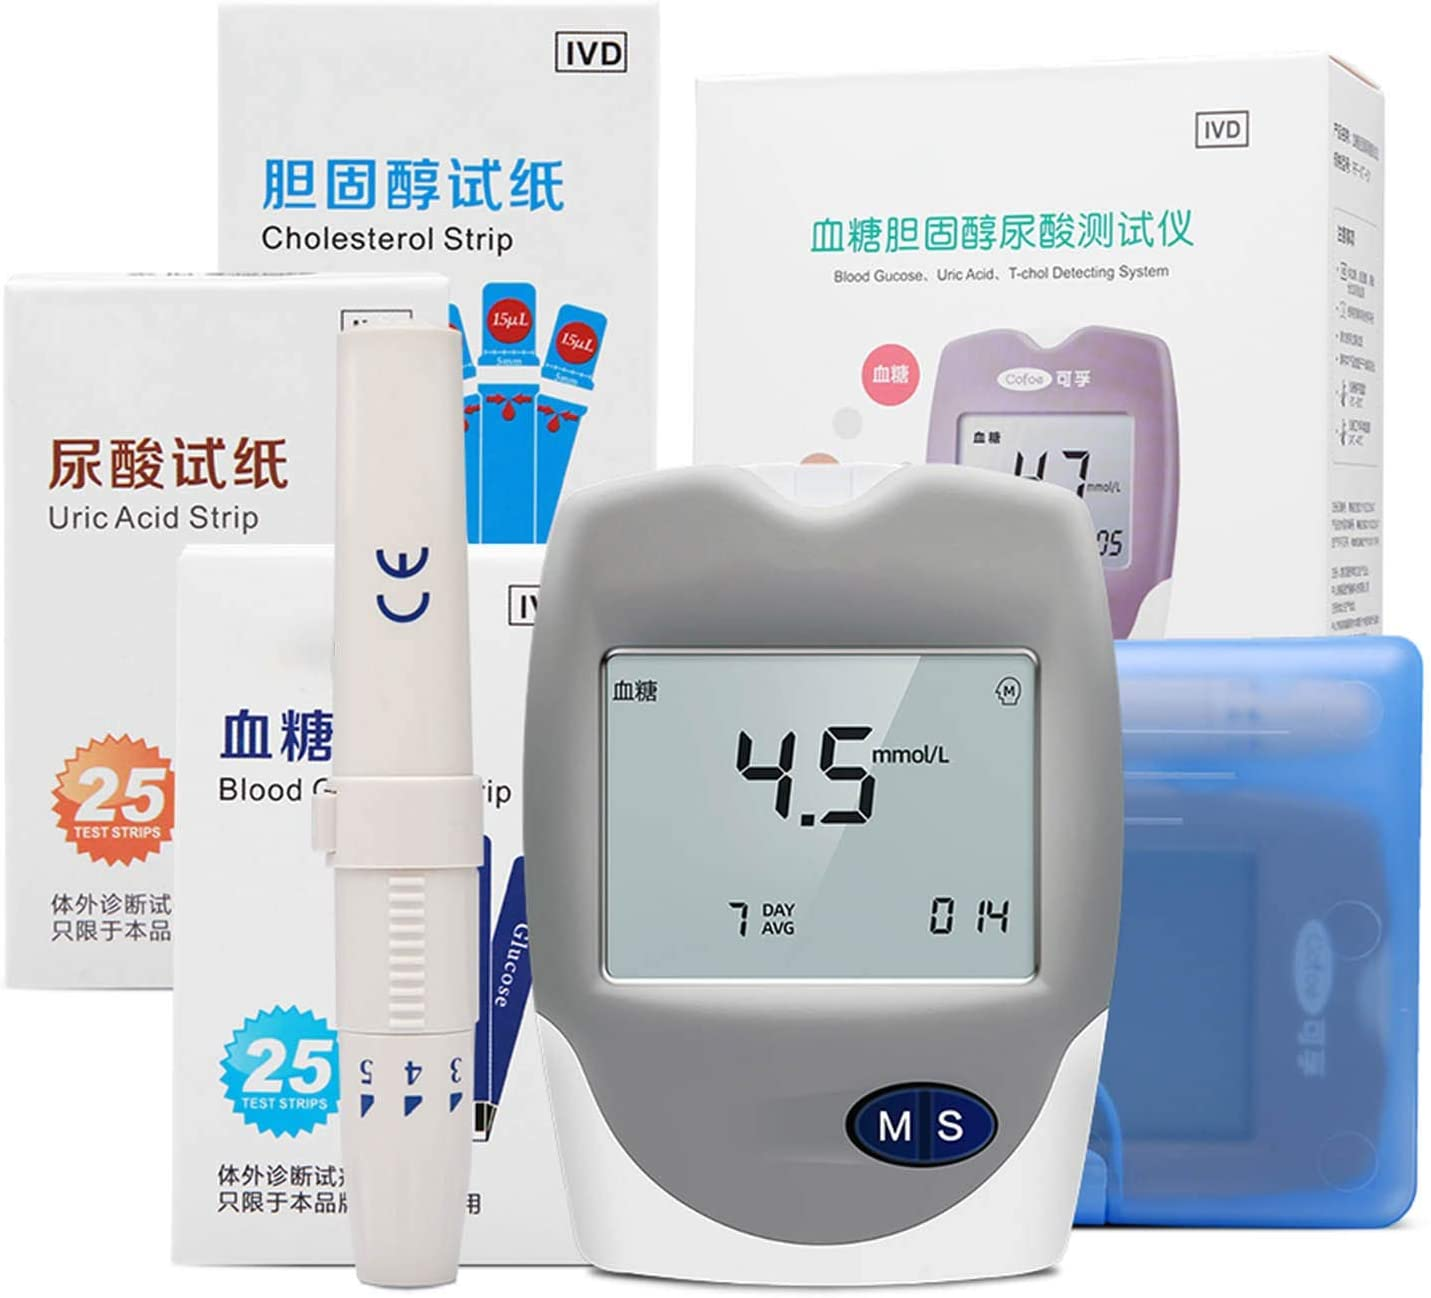 FGHEYU 3 in New product! New type 1 Sma Easy-to-use Glucose Blood Meter